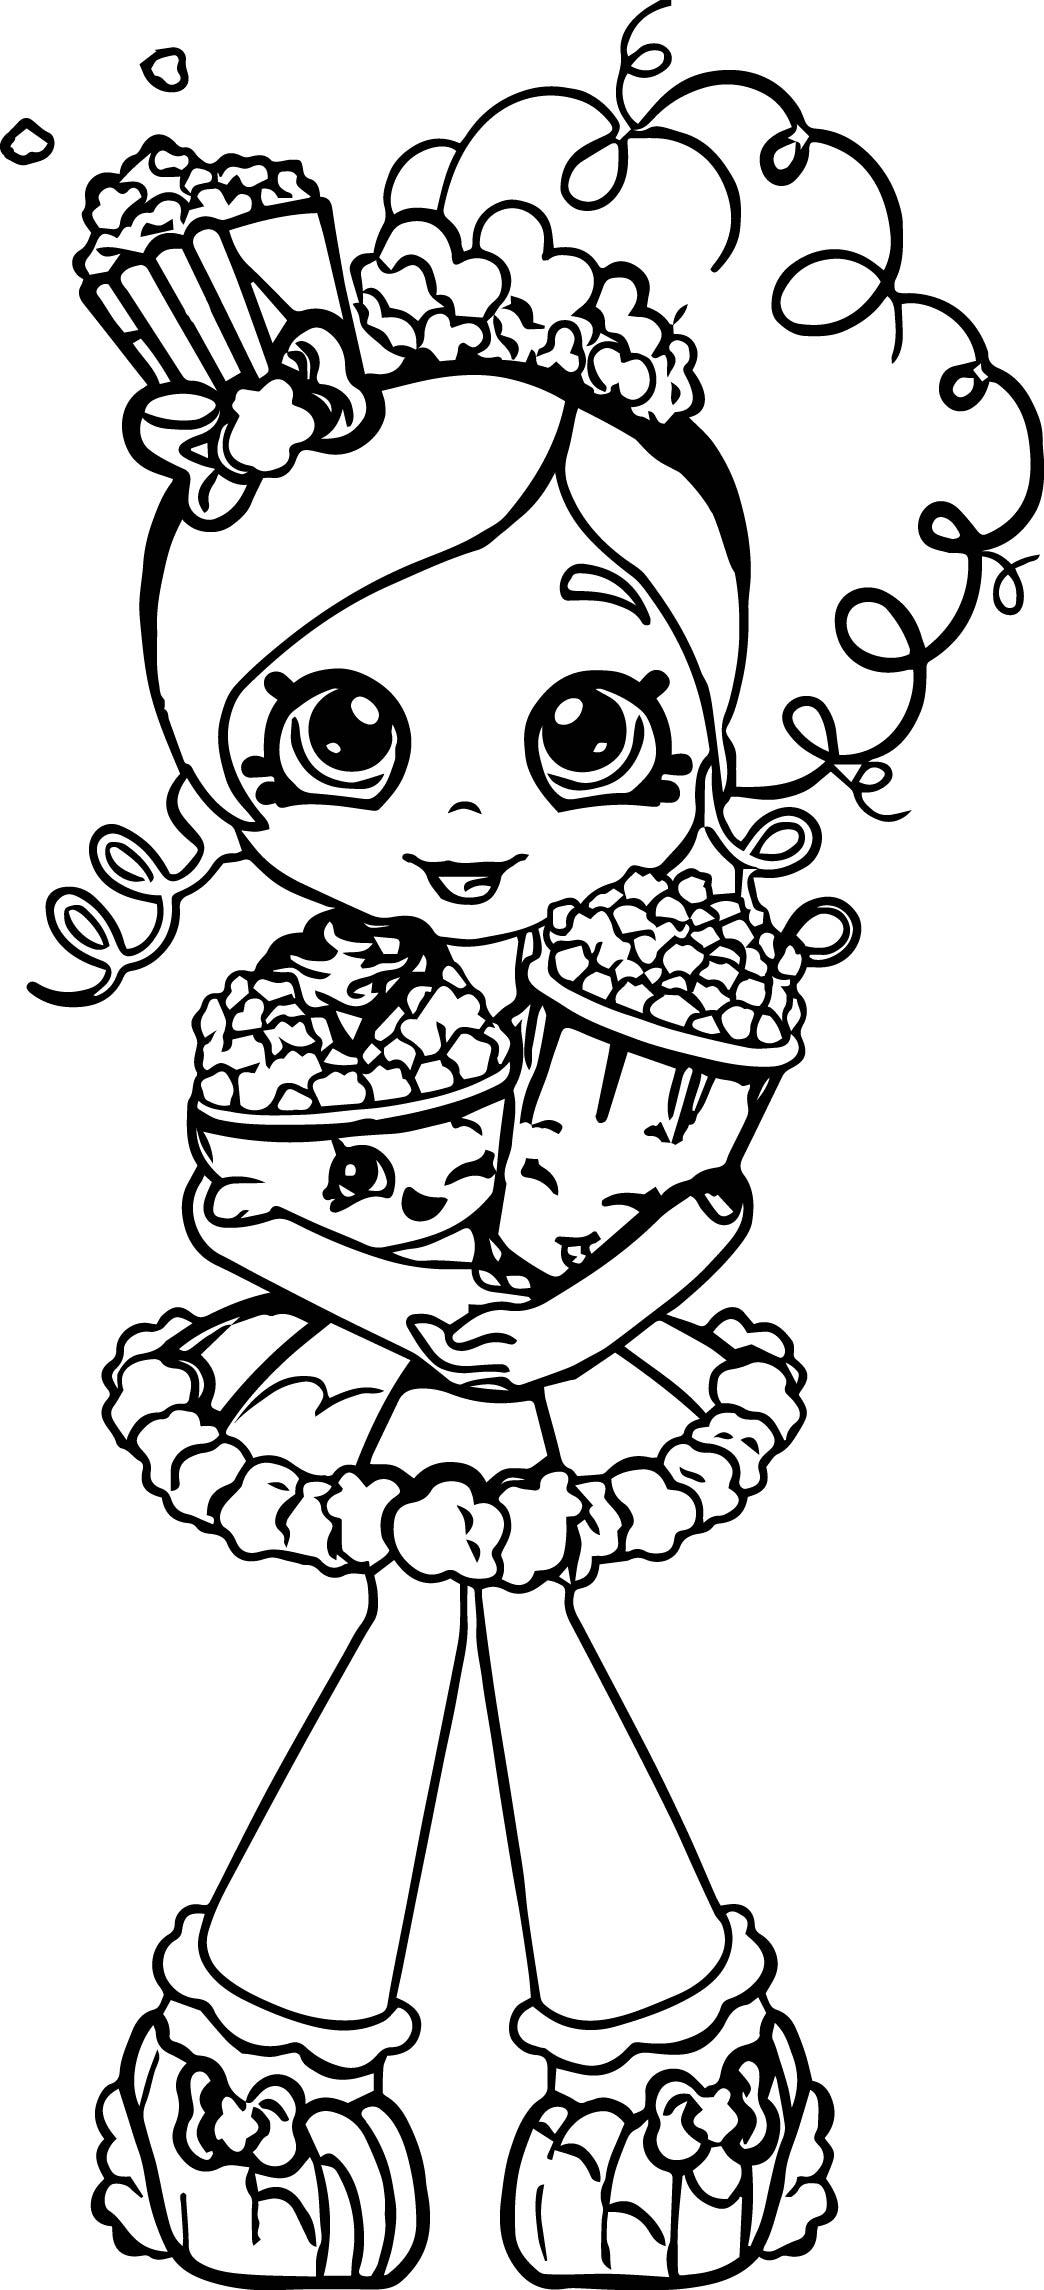 shopkins coloring pages pineapple crush - photo #15